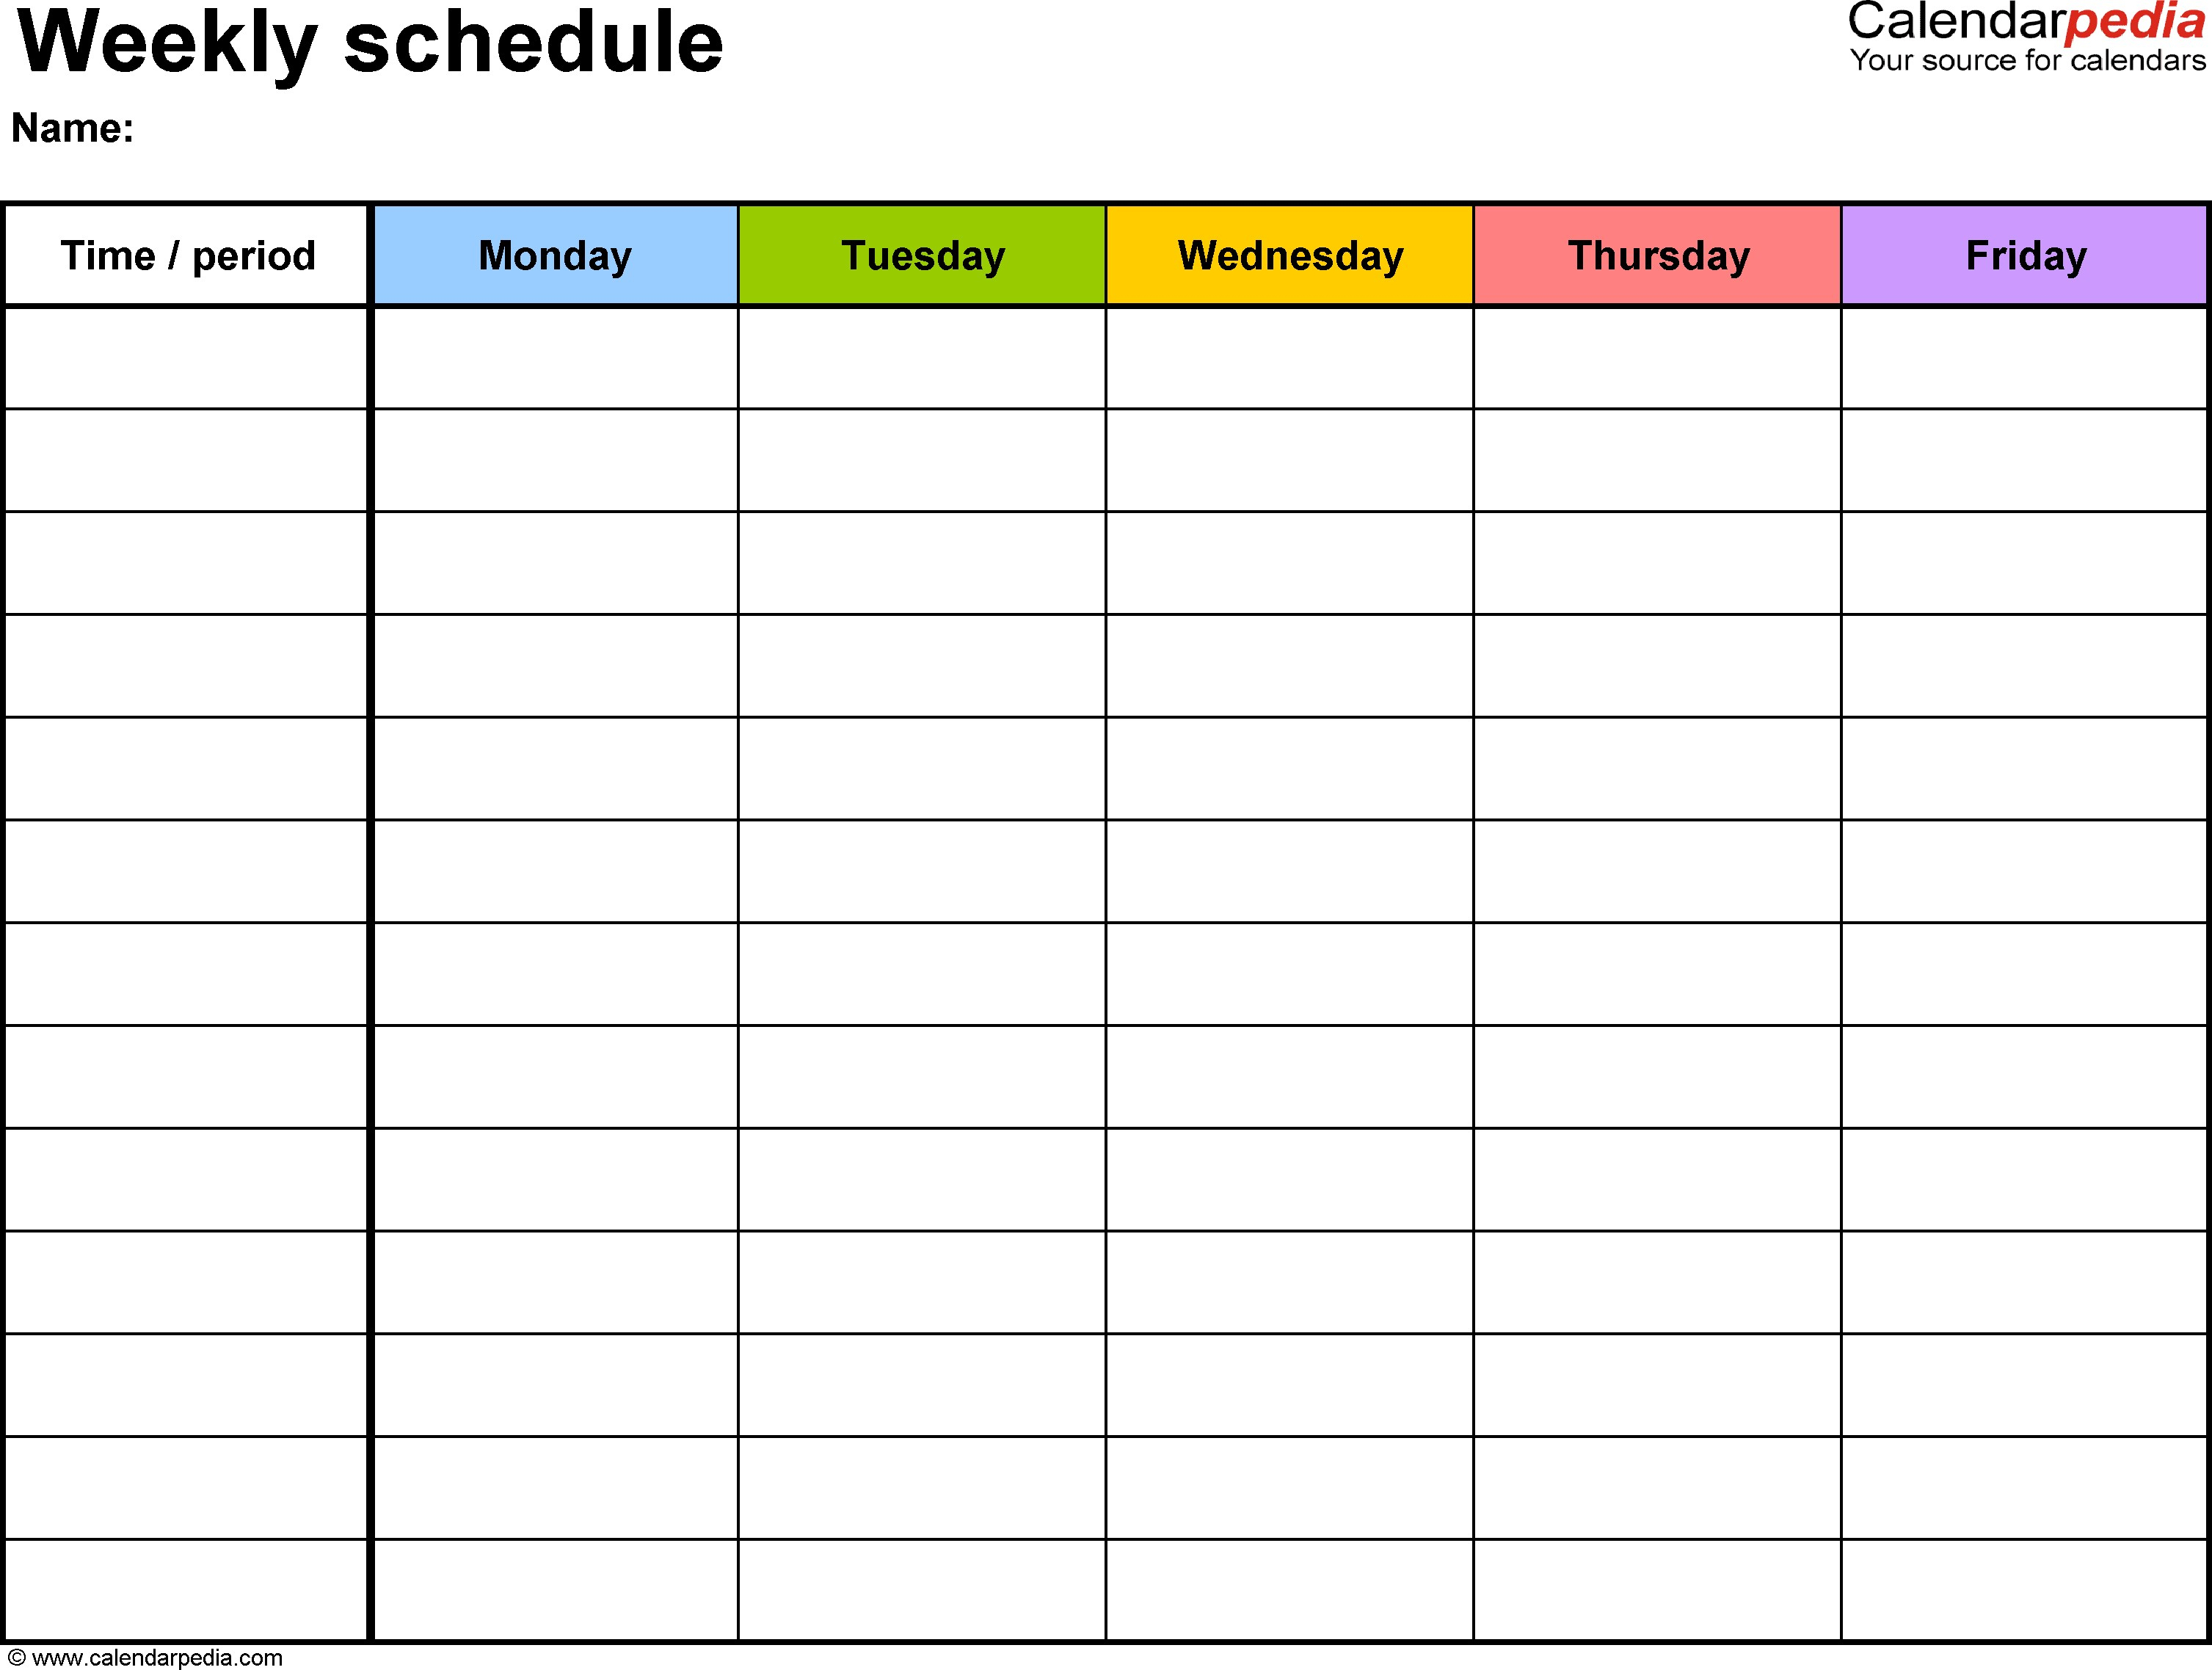 Weekly Calendar With Time Slots – Printable Month Calendar within Day Calendar With Time Slots